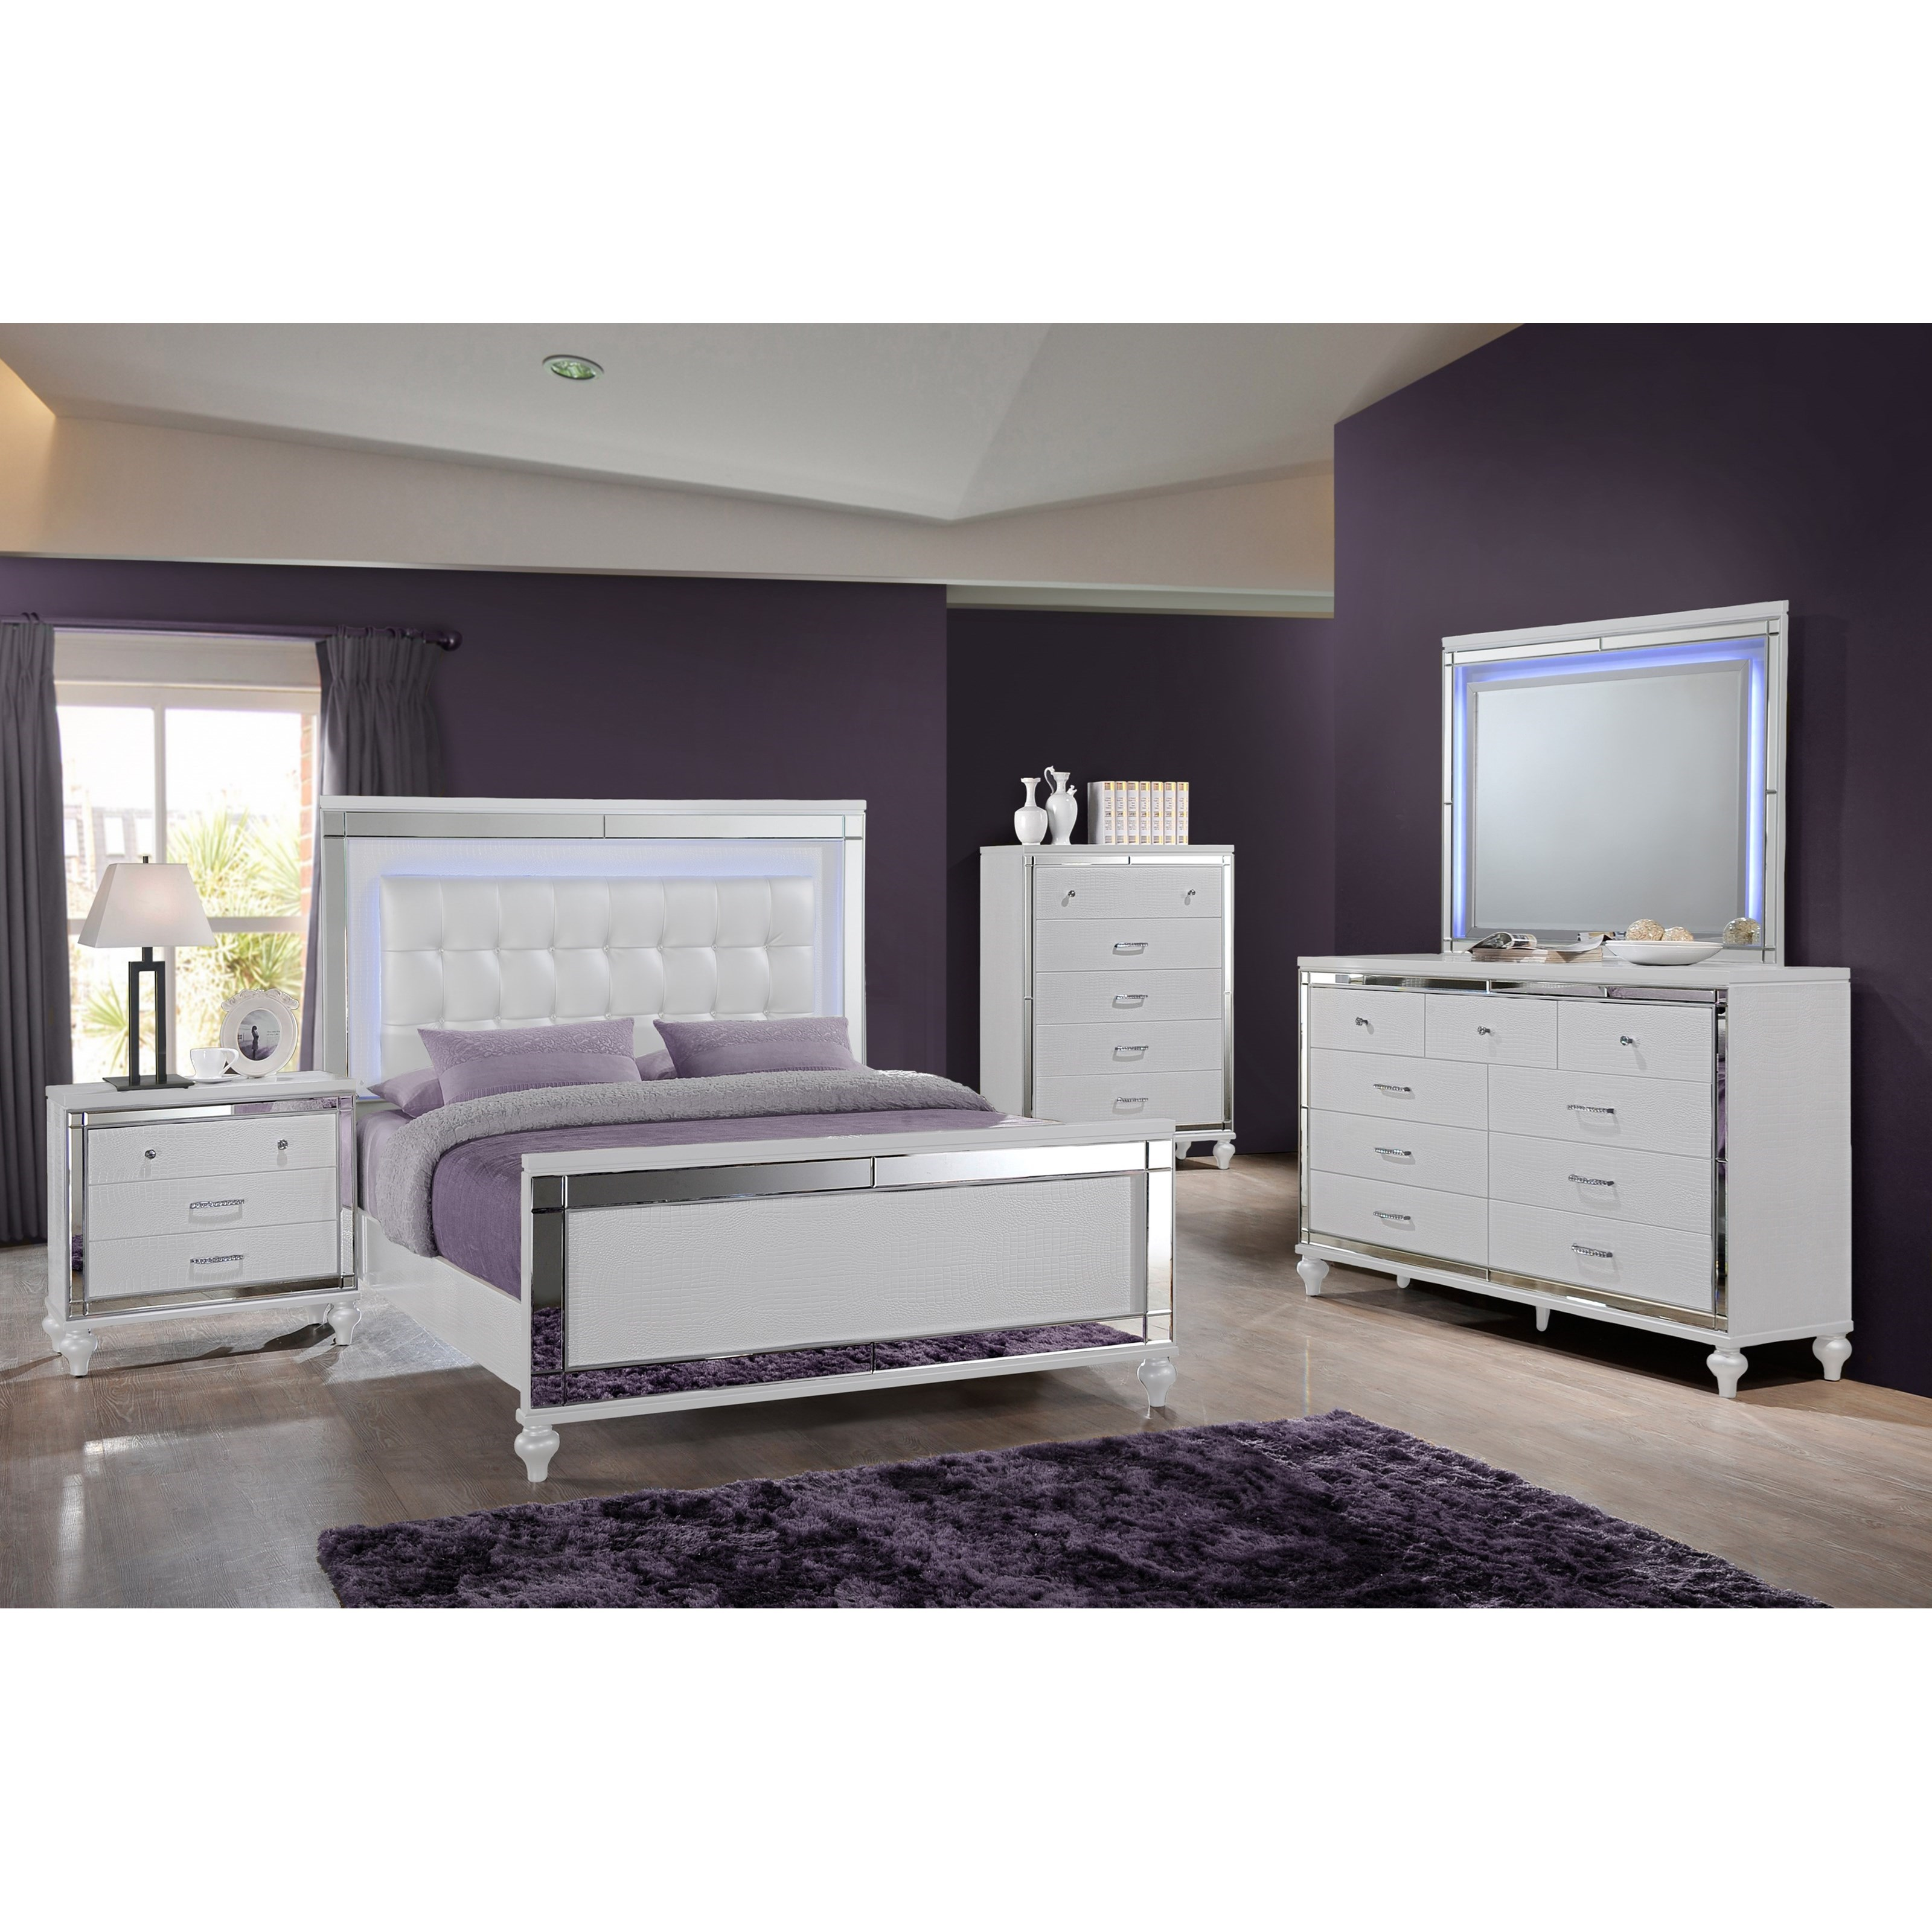 Valentino King Bedroom Group by New Classic at Rife's Home Furniture